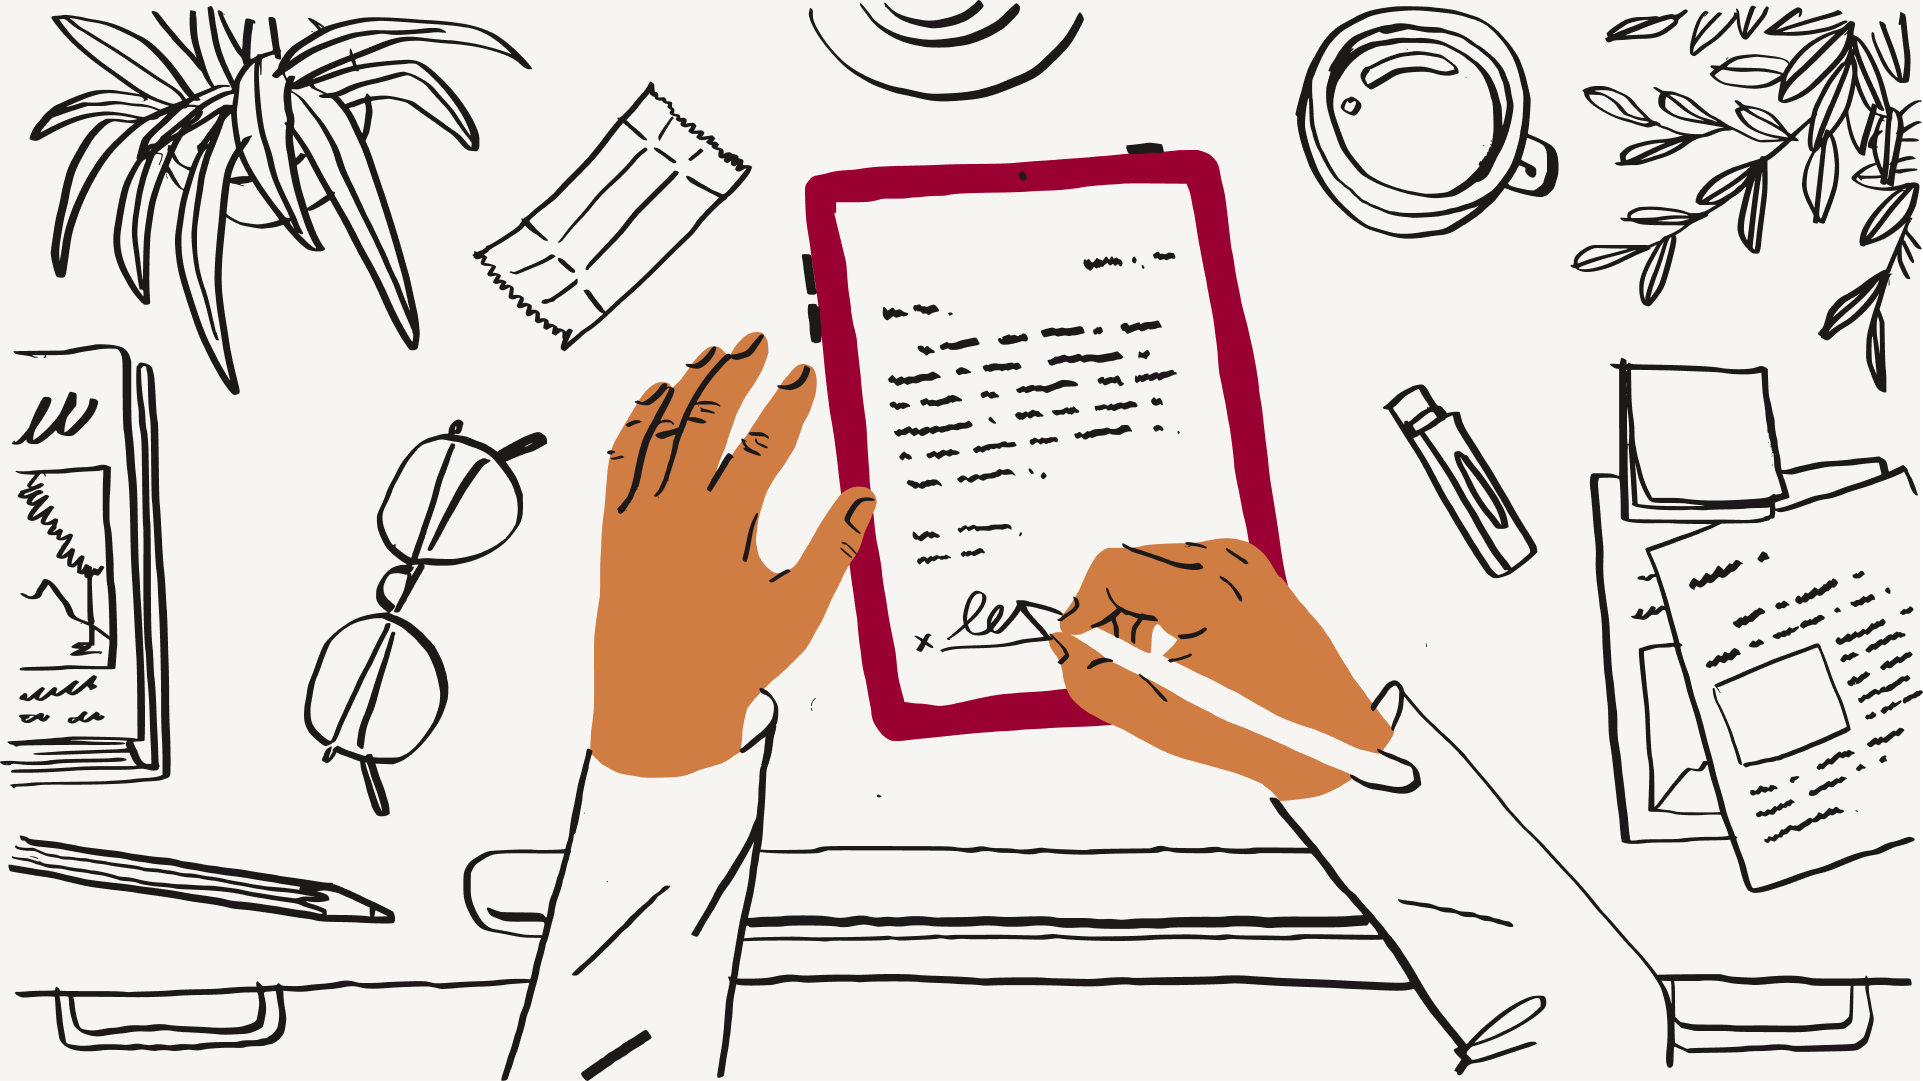 An illustration of a person signing a paper document